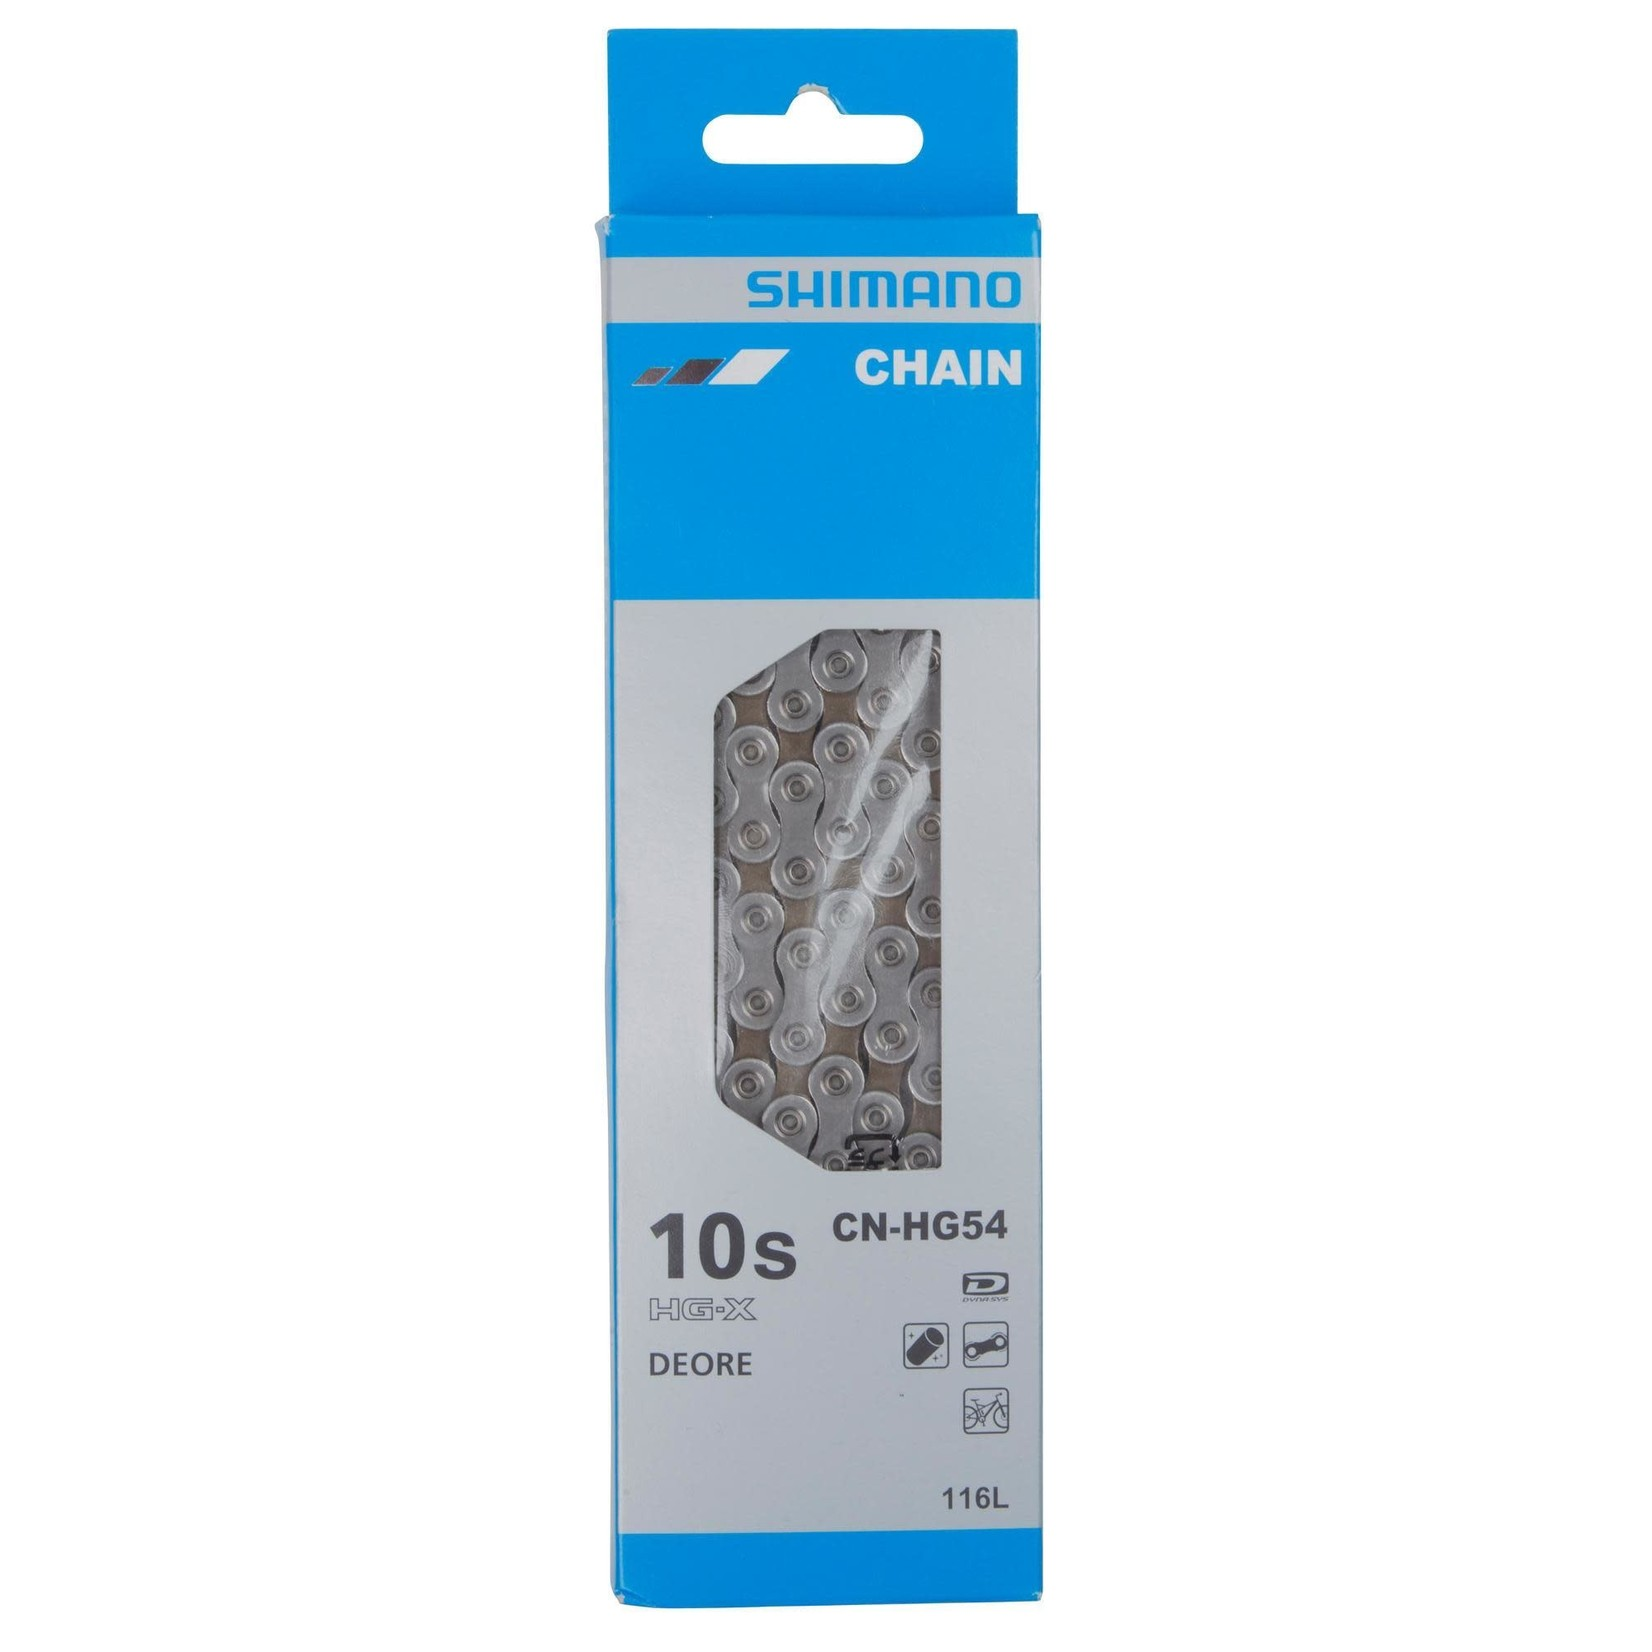 Shimano BICYCLE CHAIN, CN-HG54, SUPER NARROW HG, FOR MTB 10-SPEED, 116 LINKS, CONNECT PIN X 1